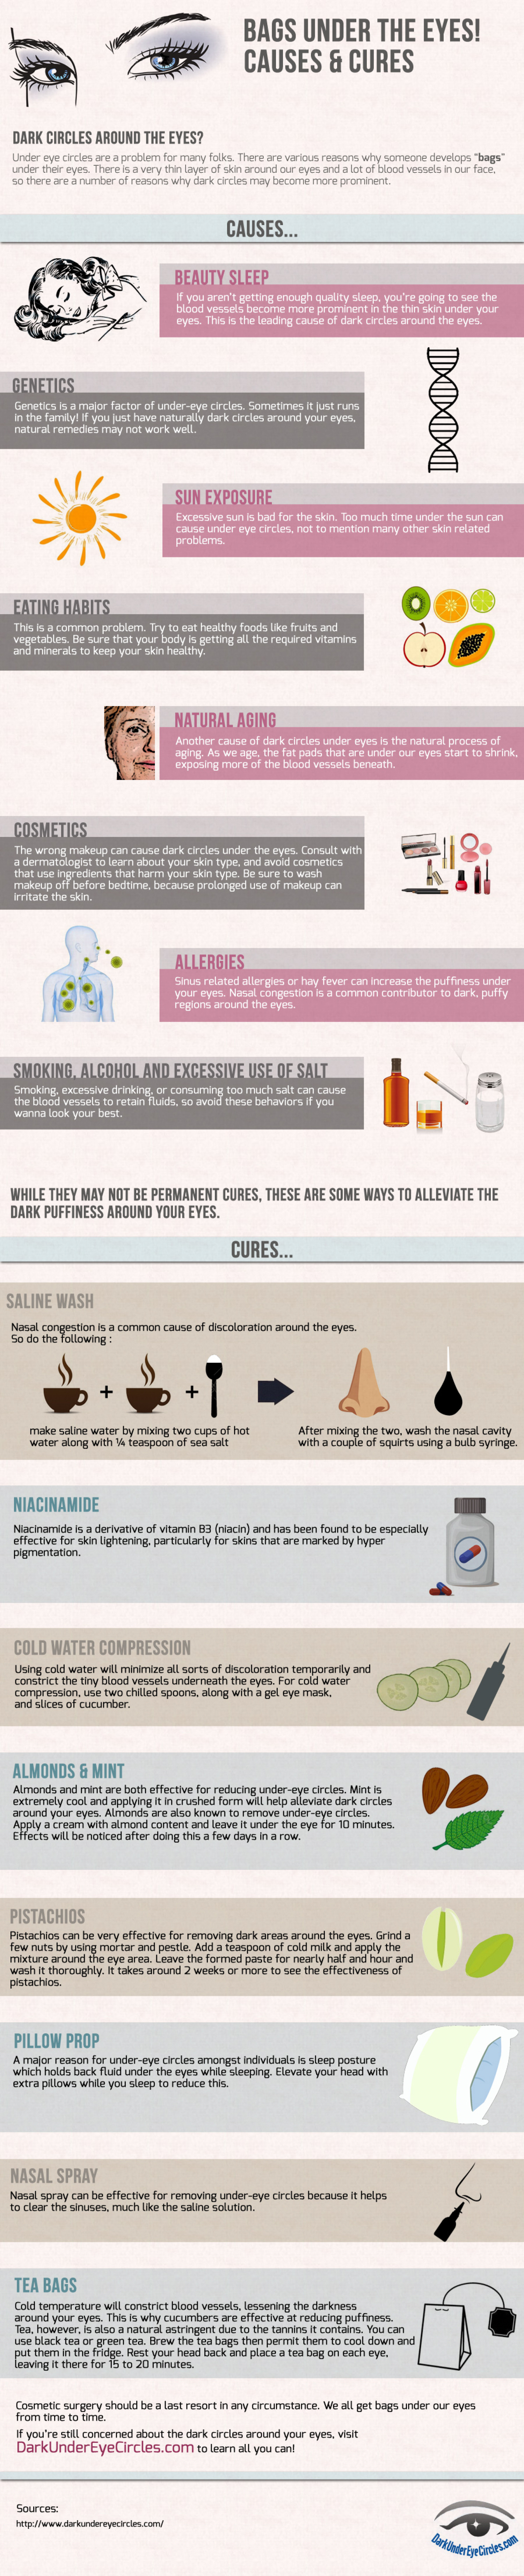 Bags Under The Eyes! Causes & Cures Infographic